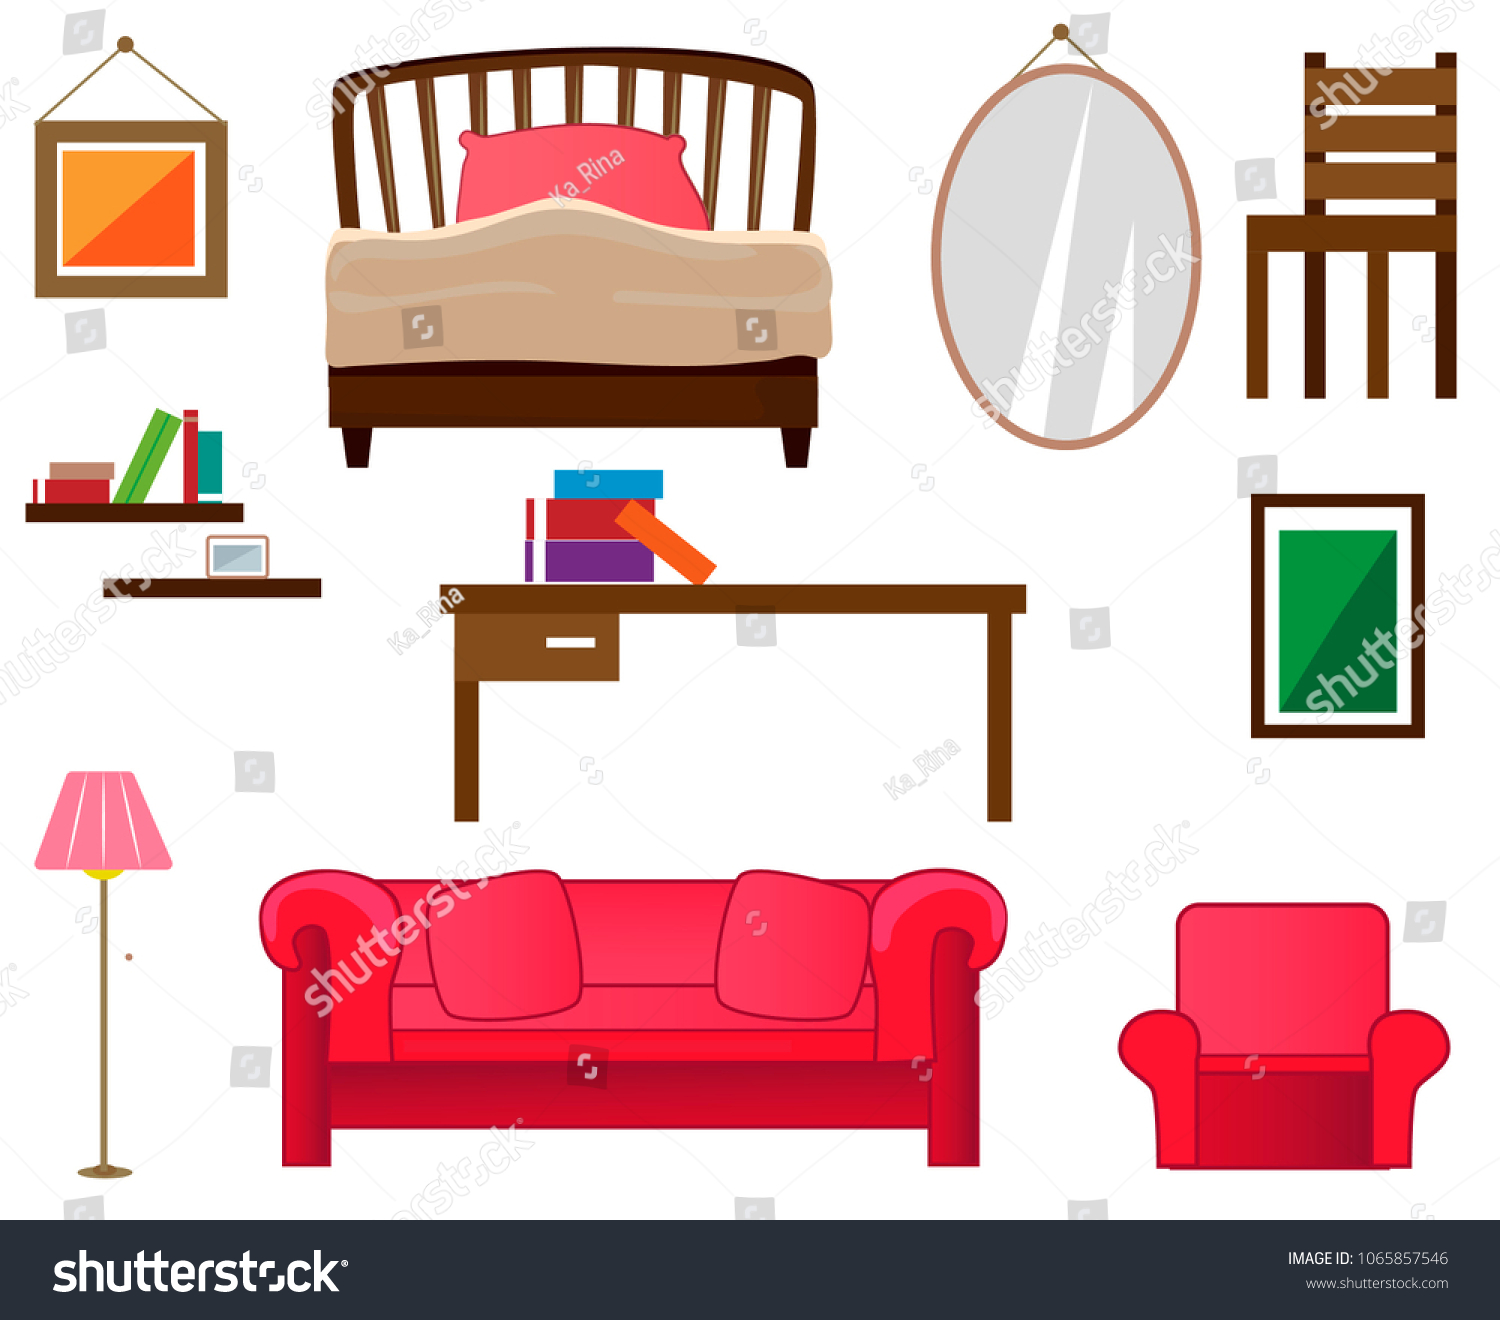 Superb Set Furniture Interior Paintings Bed Mirror Stock Vector Unemploymentrelief Wooden Chair Designs For Living Room Unemploymentrelieforg